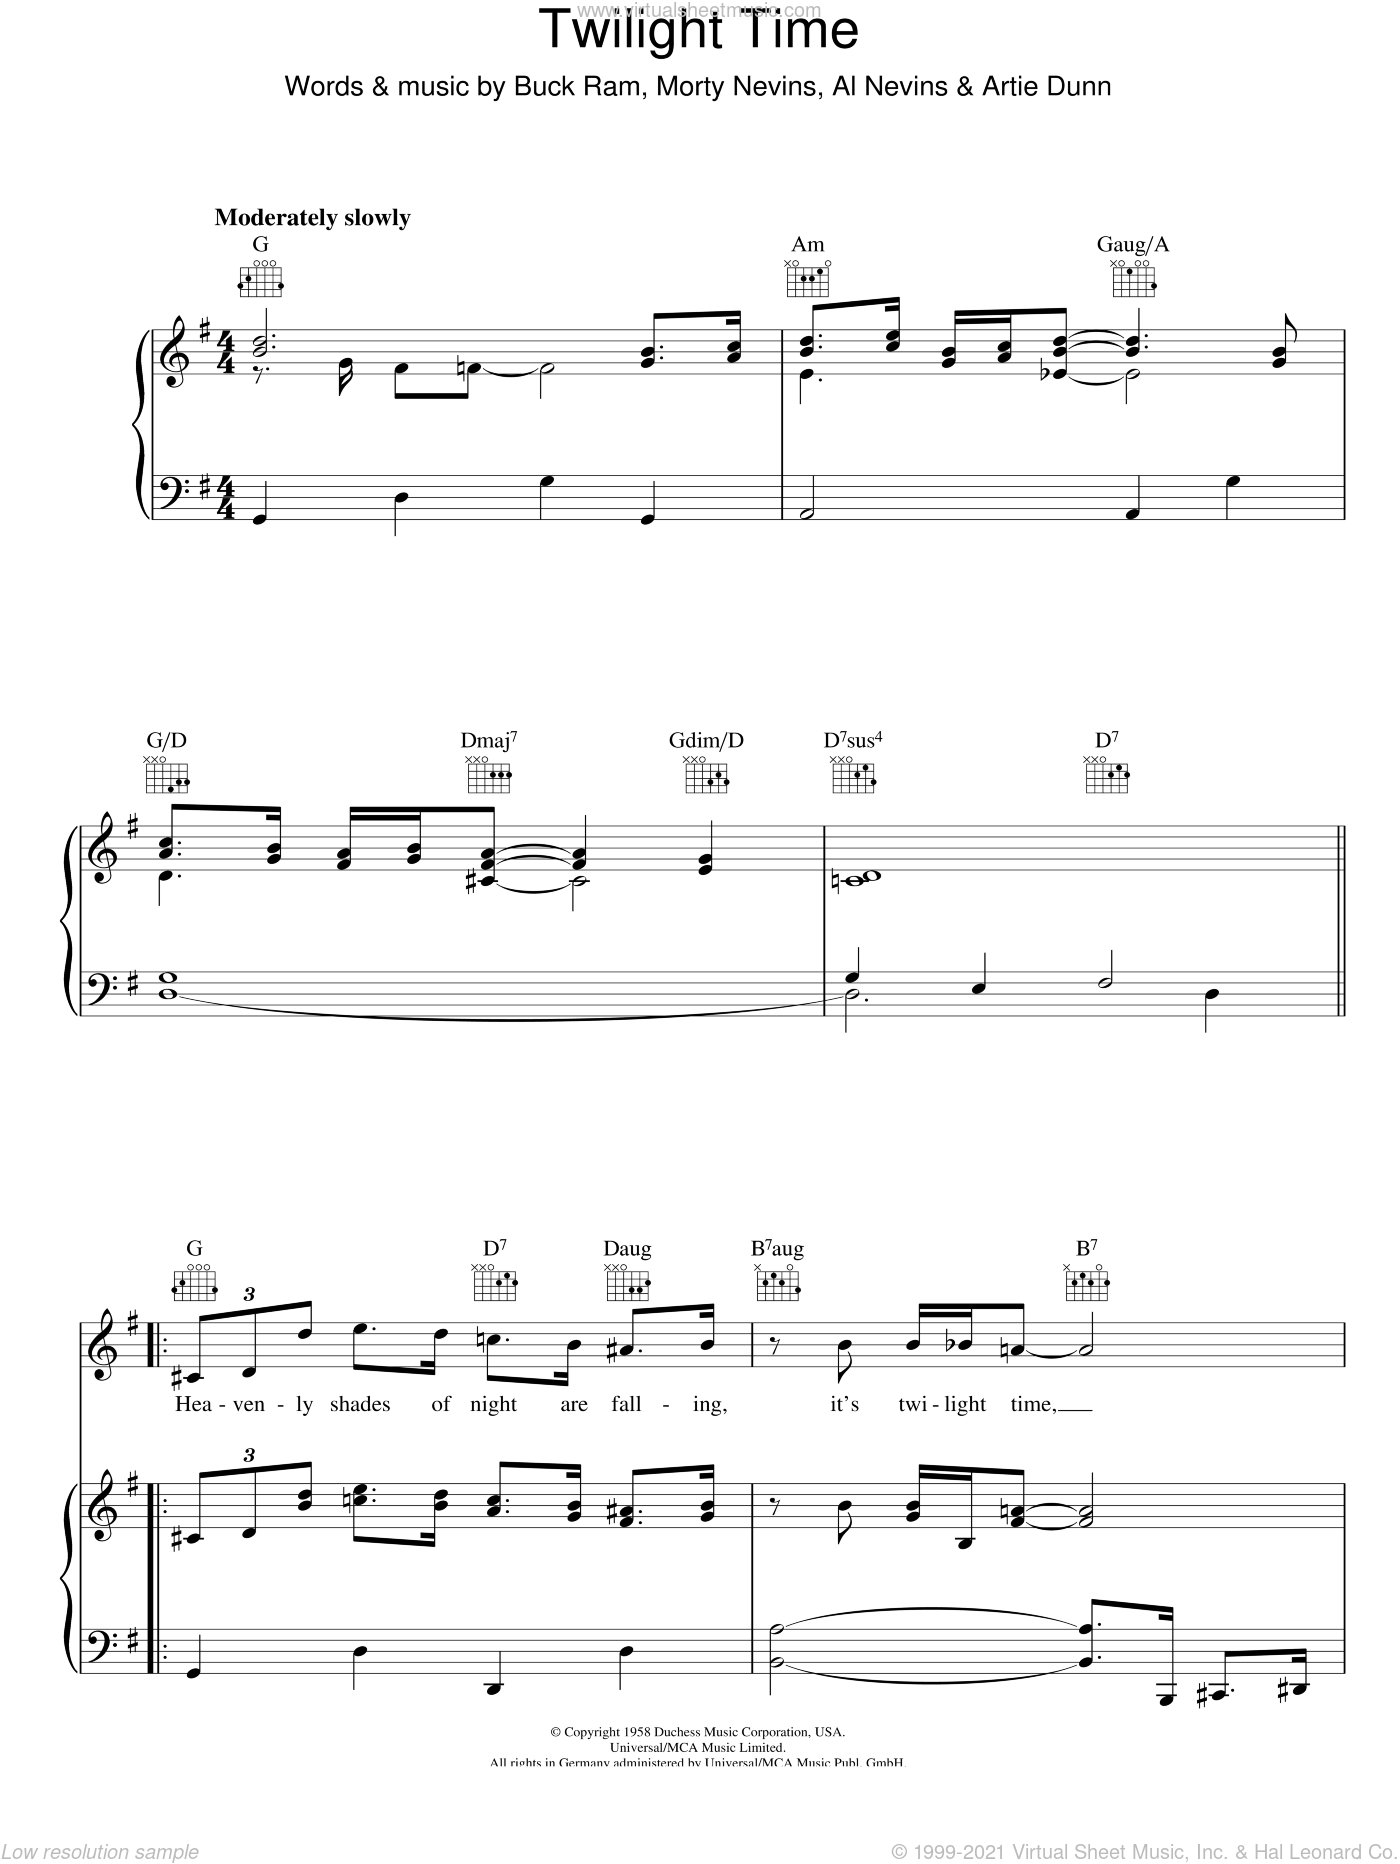 Twilight Time sheet music for voice, piano or guitar by Morty Nevins